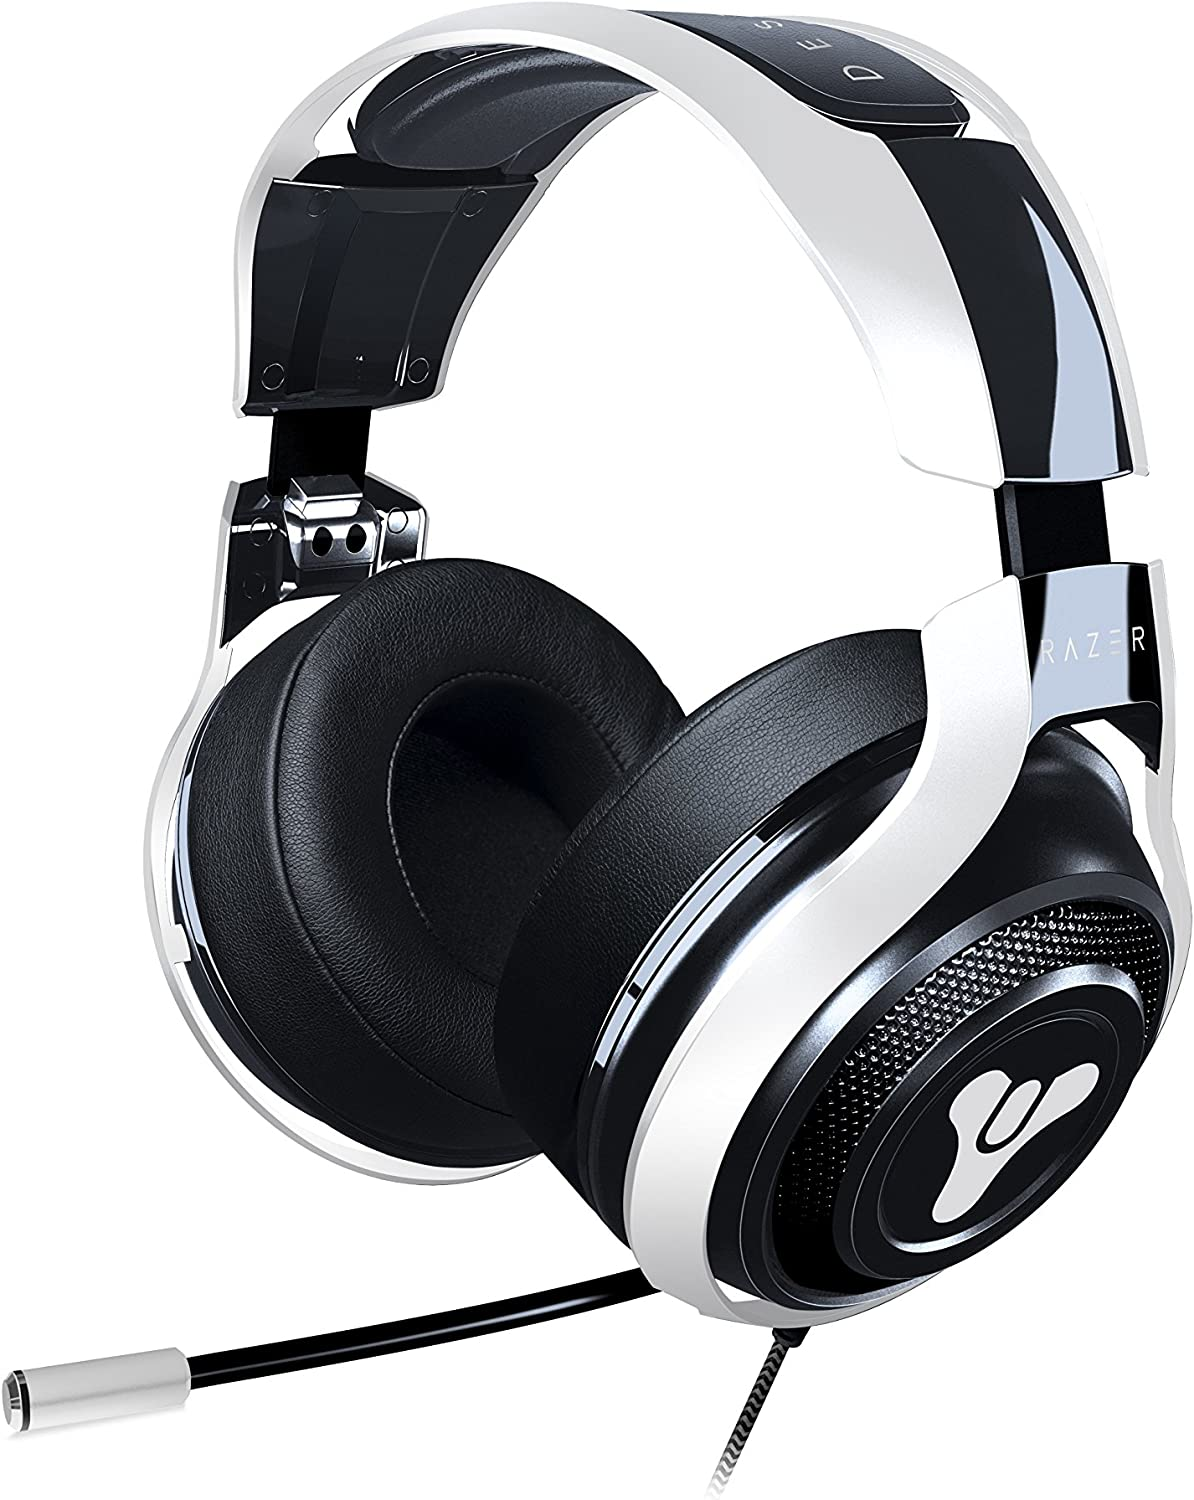 Razer Destiny 2 ManO War Tournament Edition In-Line Audio Control – Unidirectional Retractable Mic – Rotating Ear Cups – Gaming Headset Works with PC, PS4, Xbox One, Switch, Mobile Devices